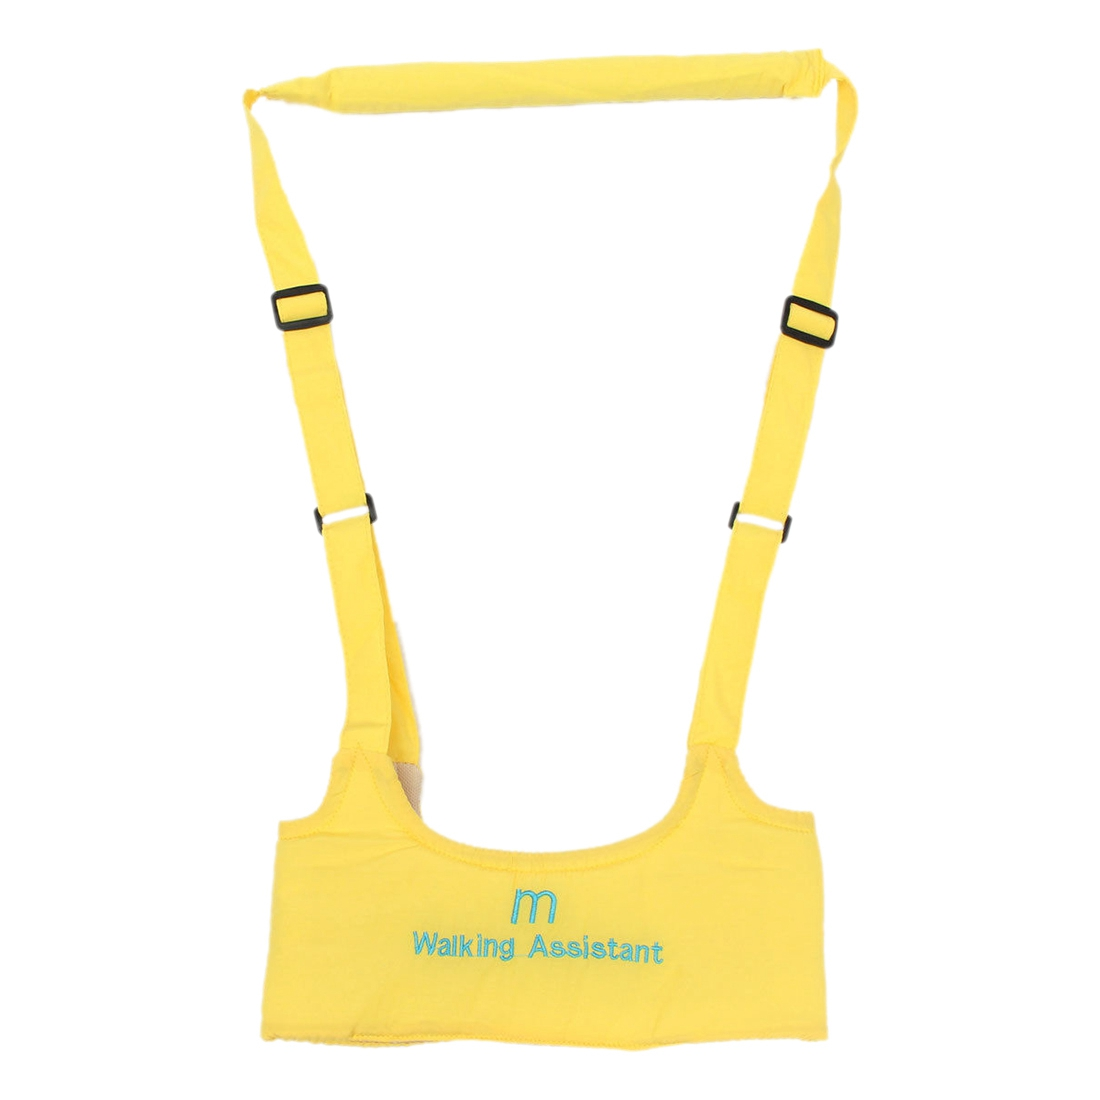 ABWE Best Sale SAFETY HARNESS WITH BRACES FOR CHILDREN CHILDREN LEARN TO WALK NEW